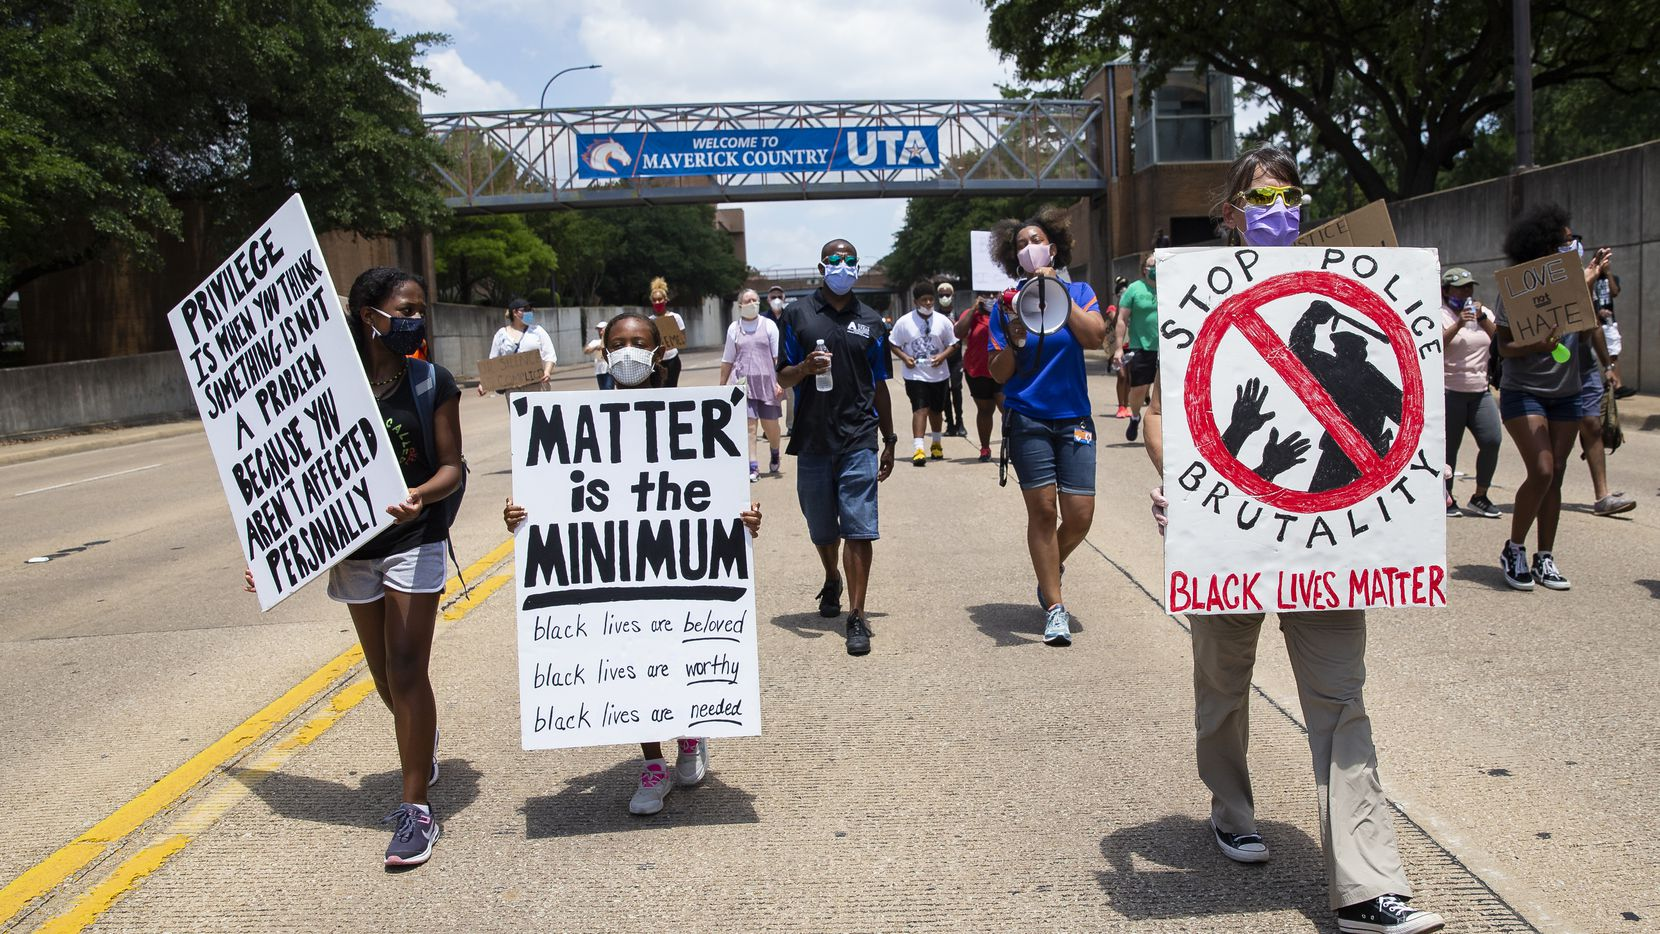 Protestors against police brutality march down S Cooper St as they participate in the UTA School of Social Work's Protest March in Arlington on Monday, June 8, 2020.